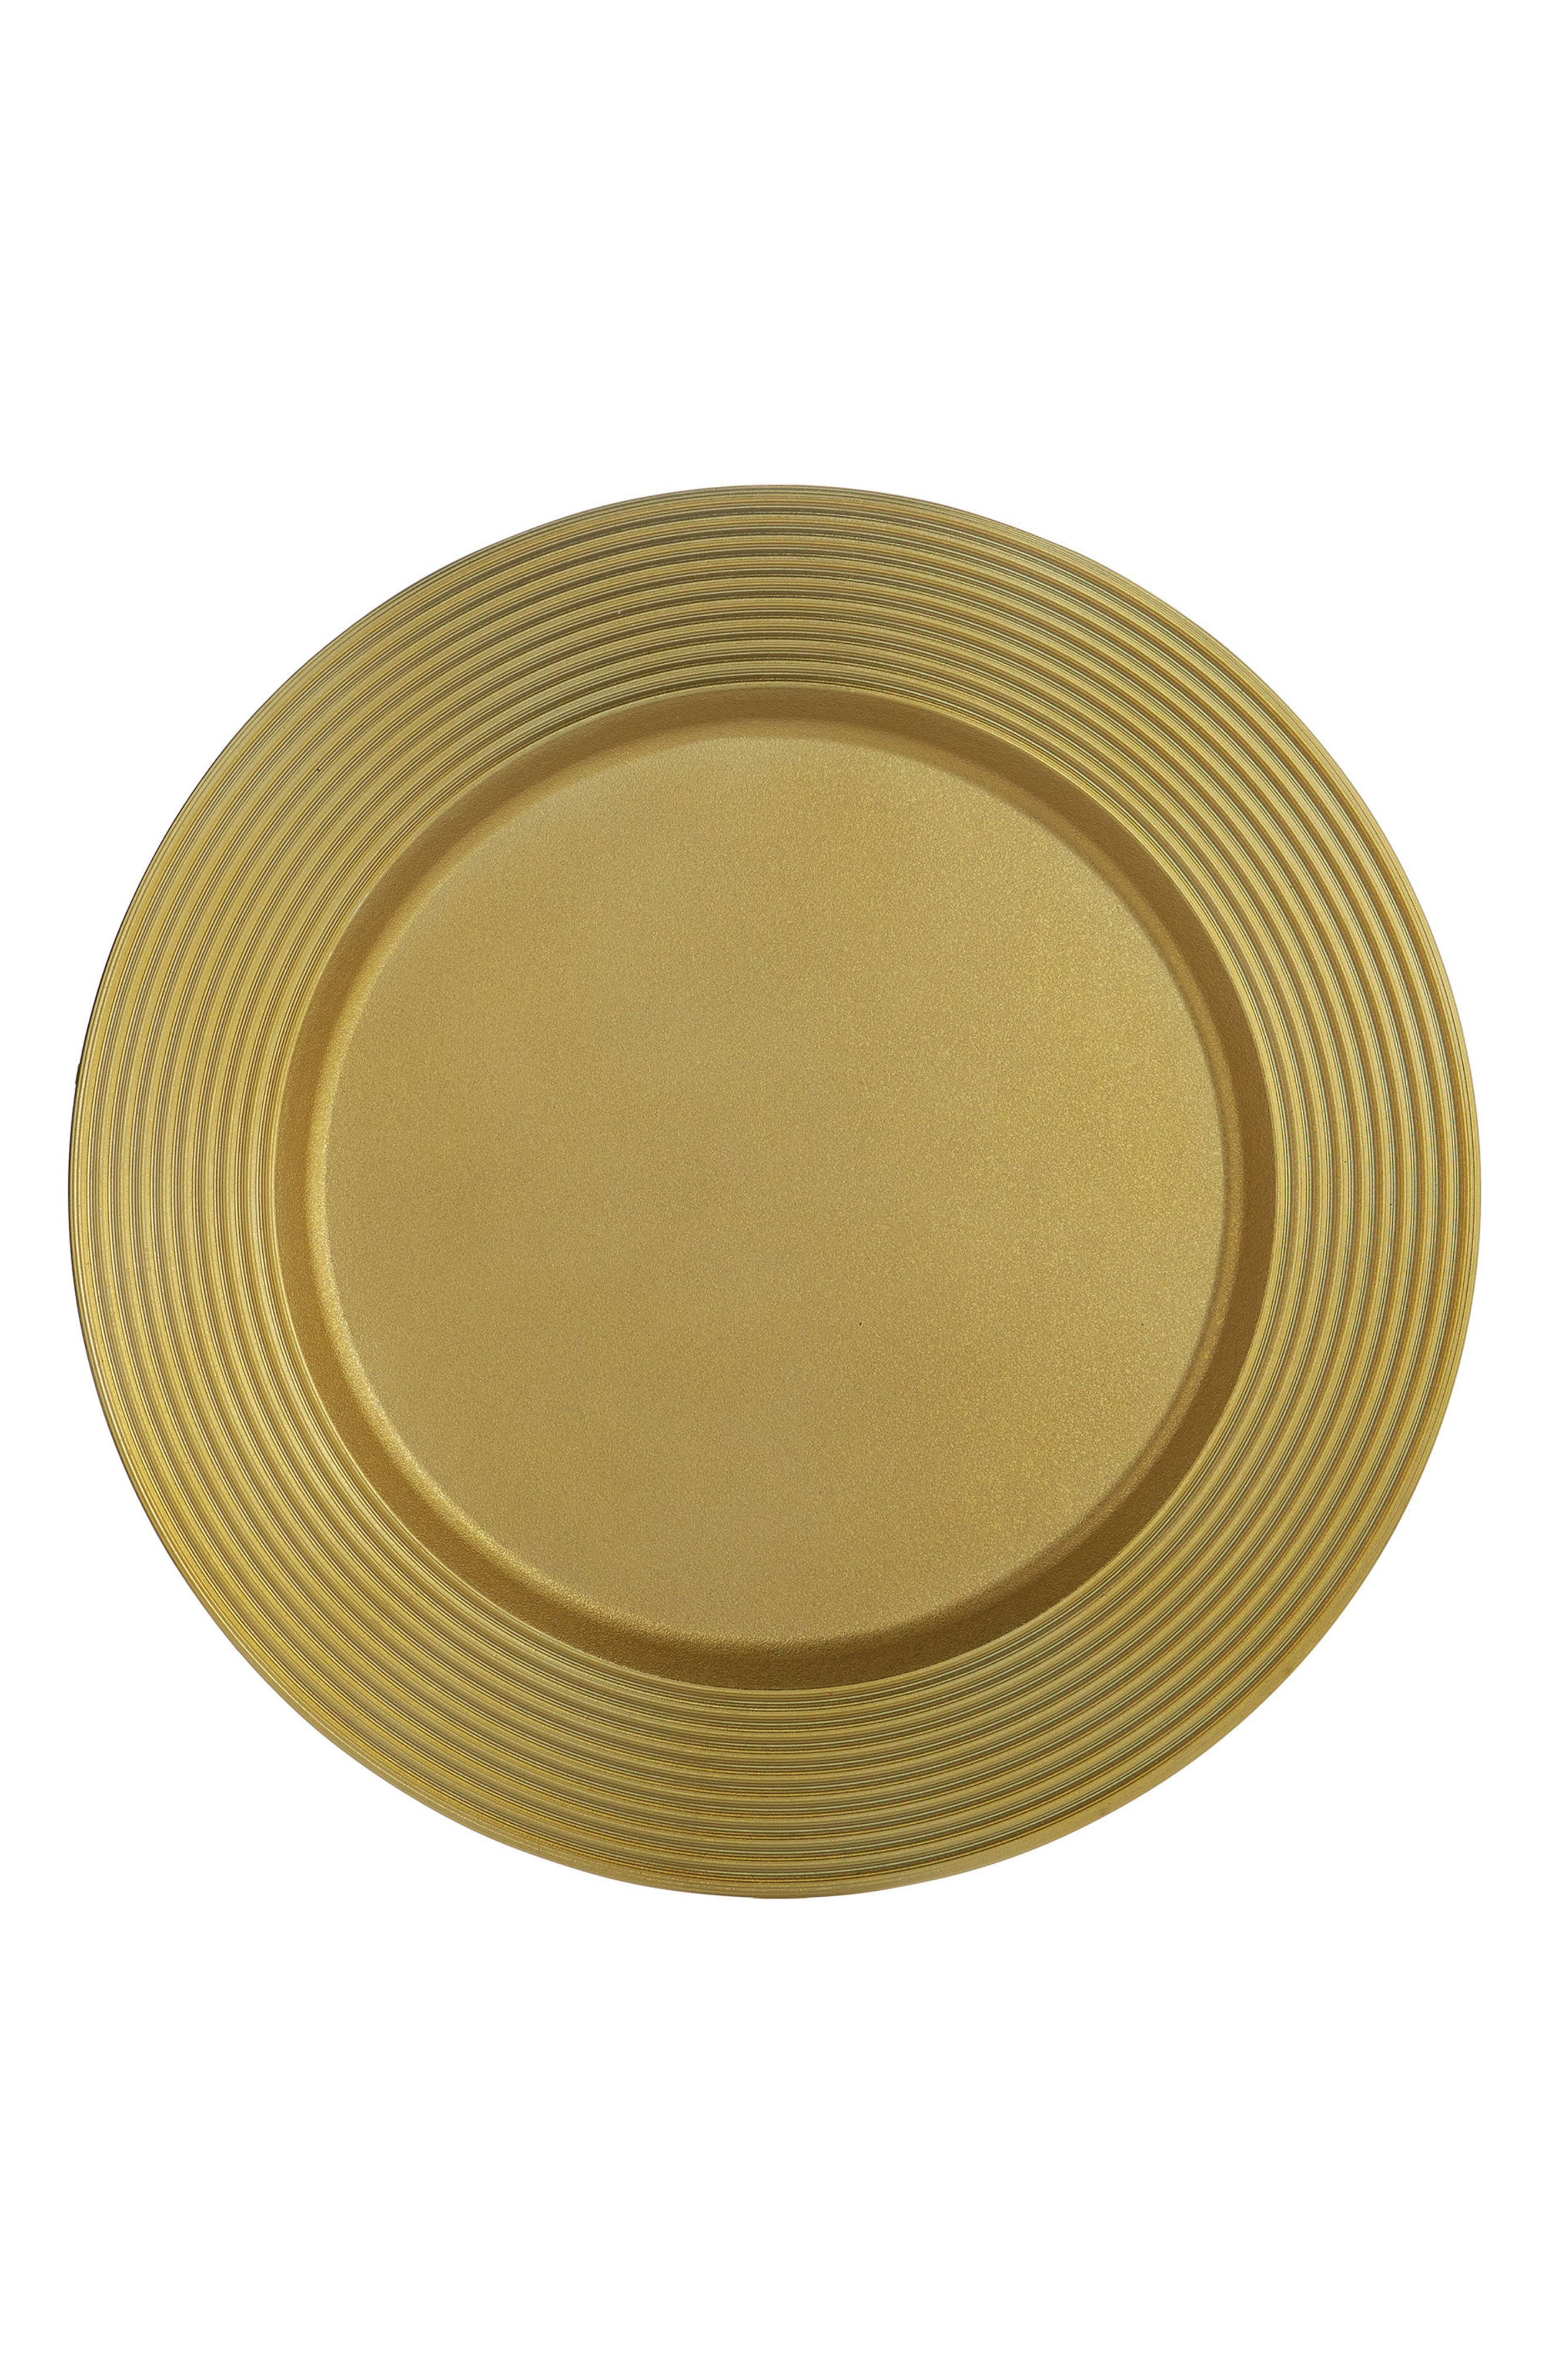 Wheat Charger Plate,                             Alternate thumbnail 2, color,                             GOLD